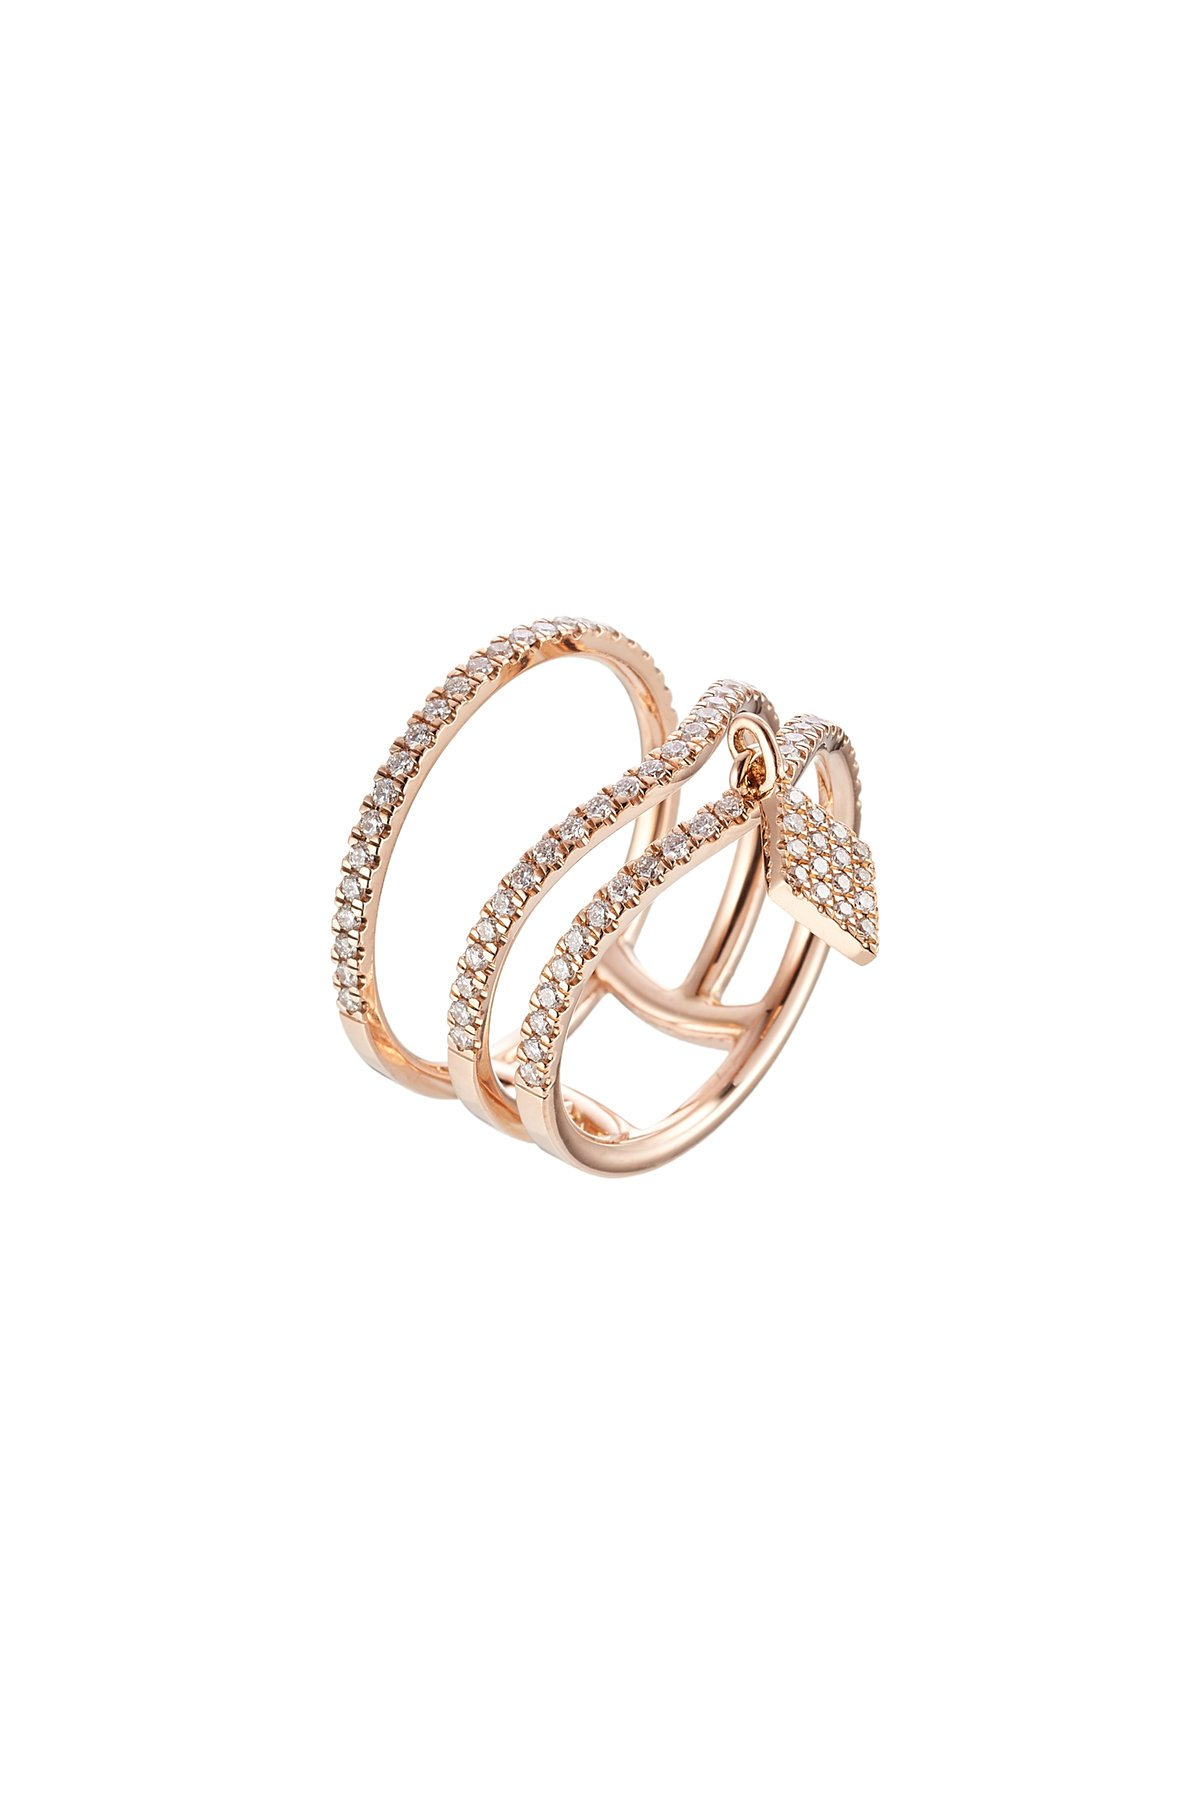 18kt Rose Gold Ring with White Diamonds Gr. 6